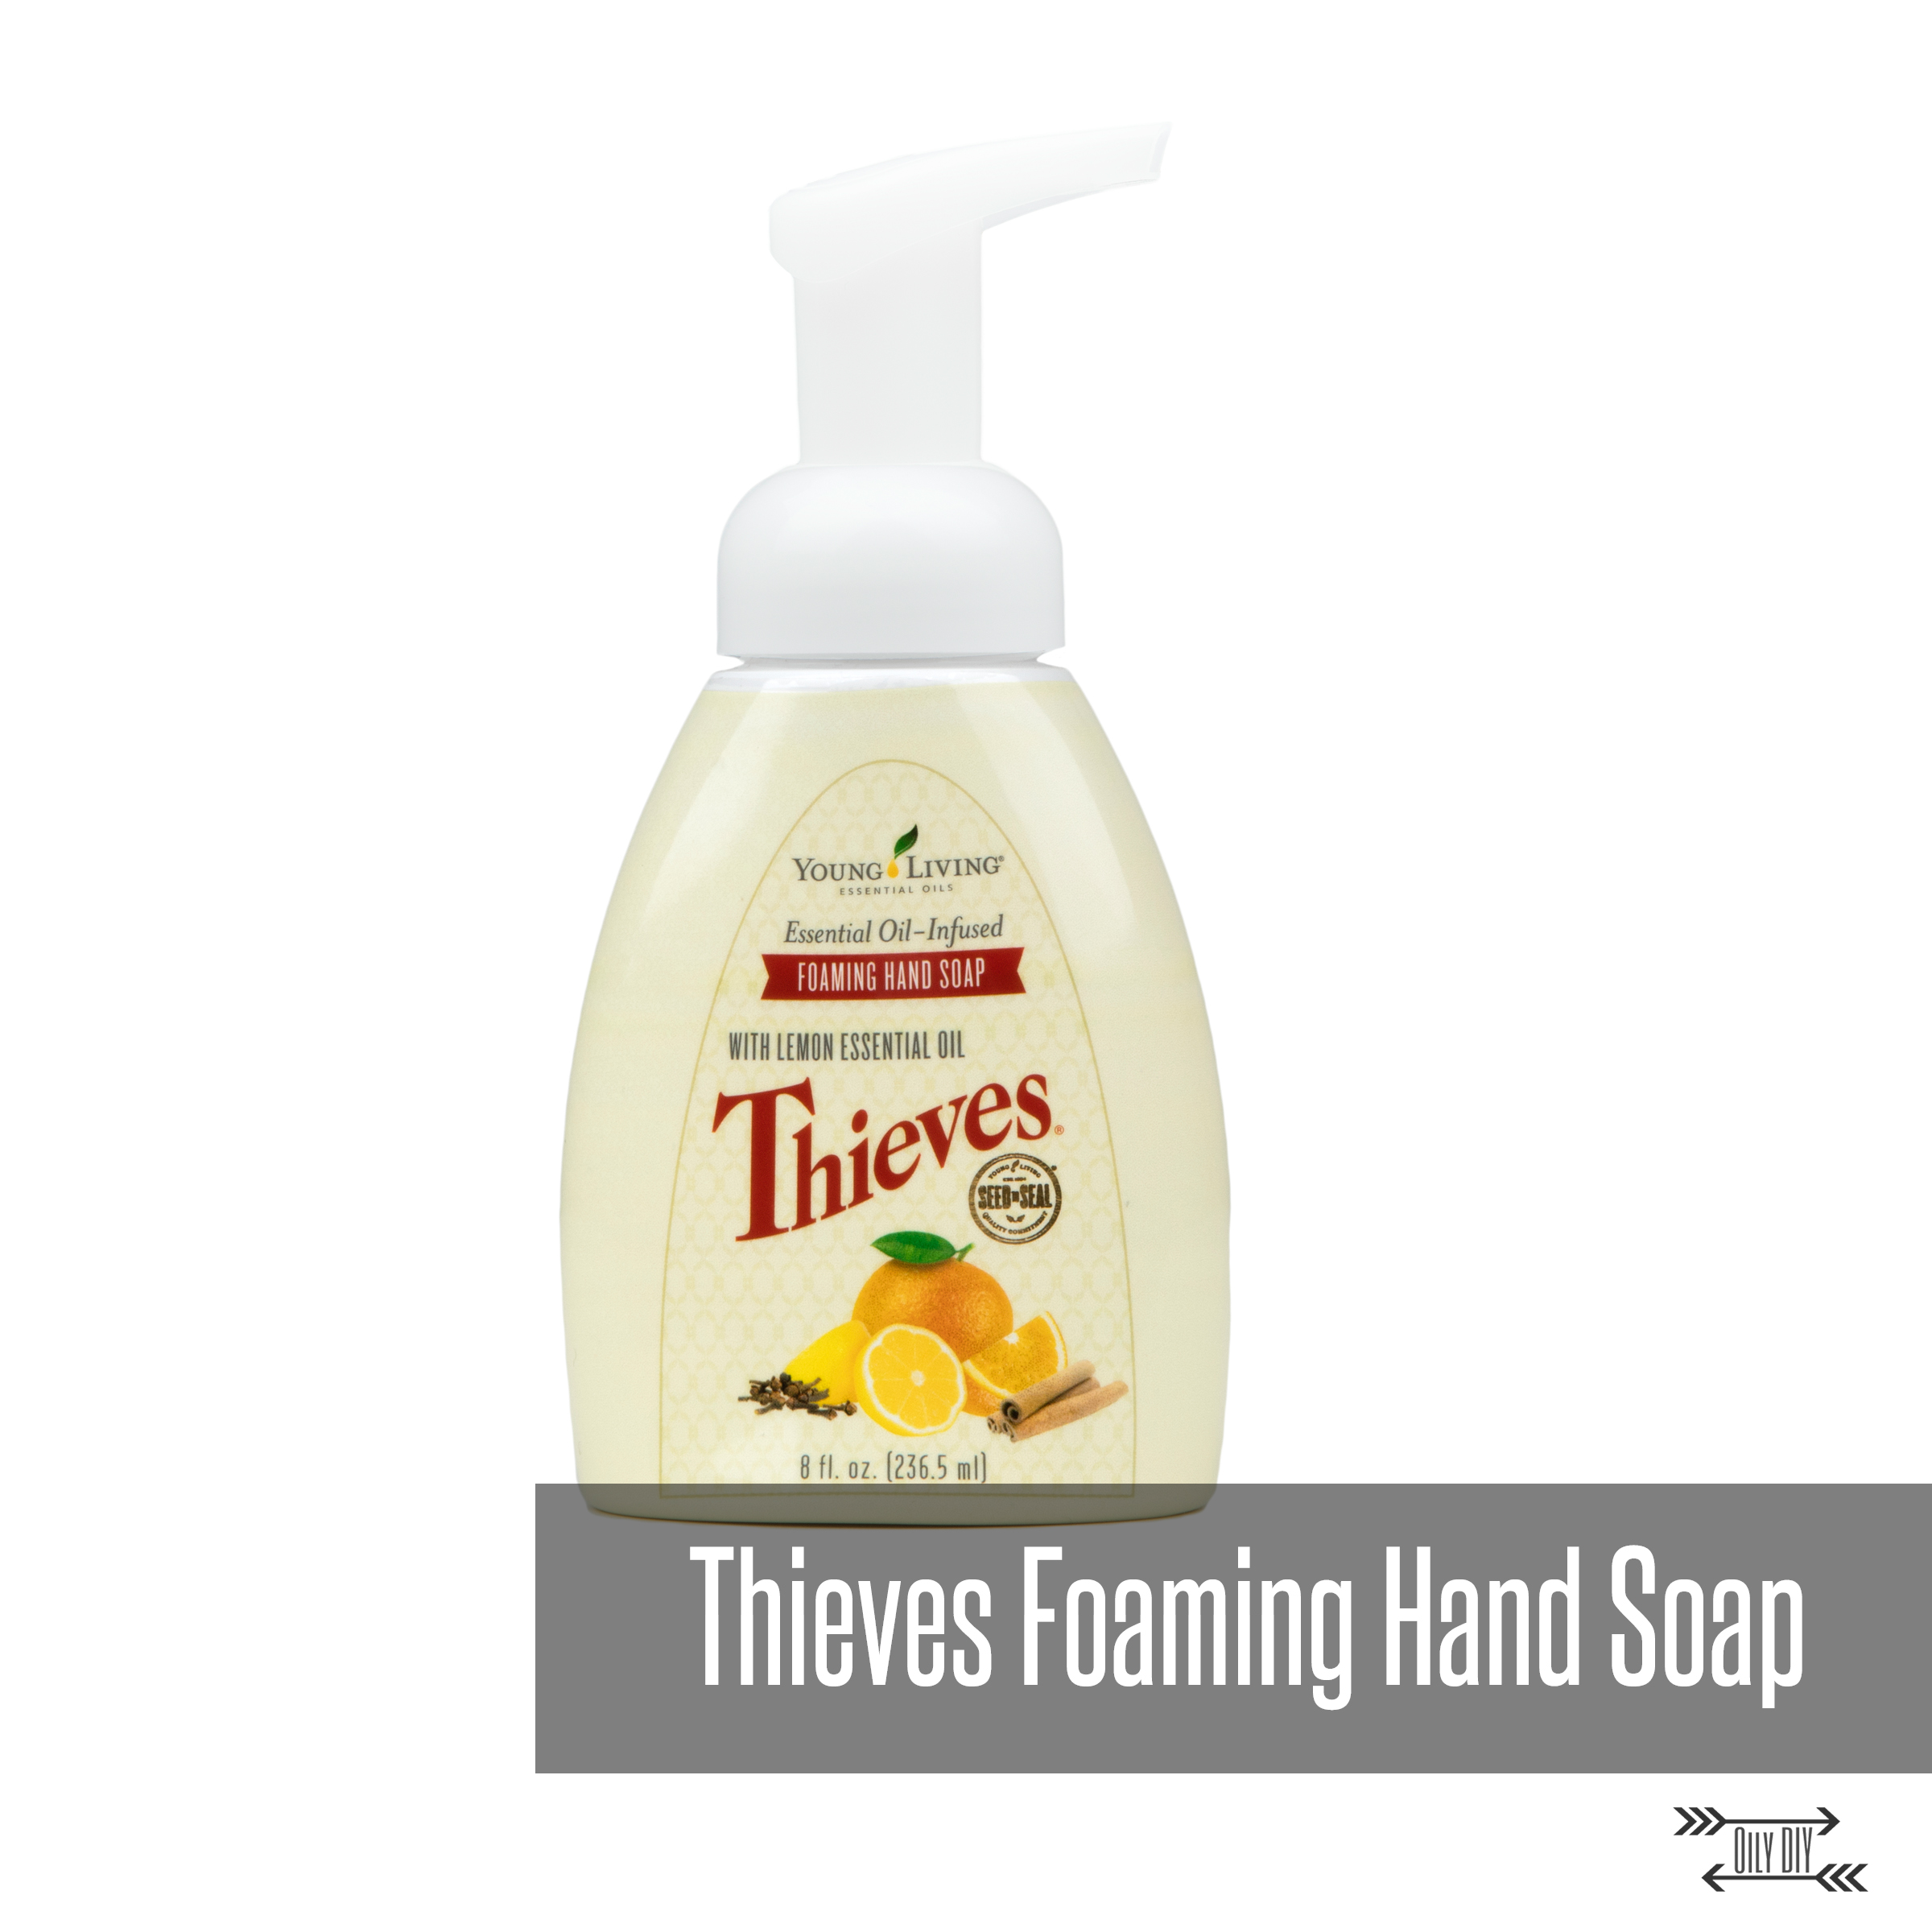 Thieves Foaming Hand SoapTitle.jpg